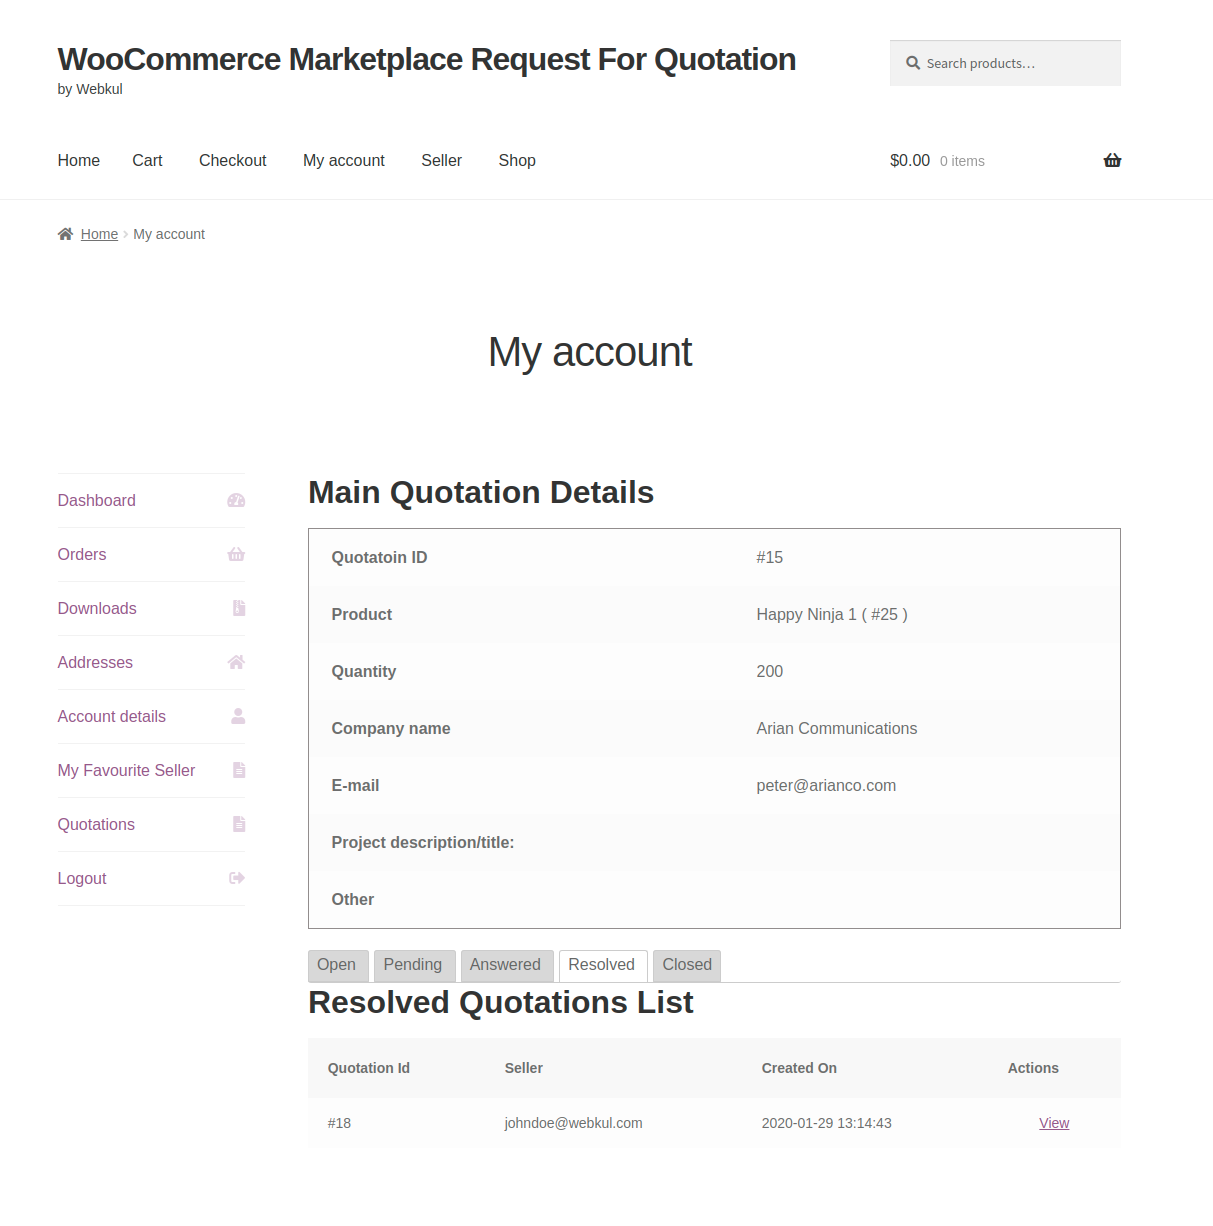 webkul-woocommerce-marketplace-request-for-quotation-customer-end-quote-listed-under-resolved